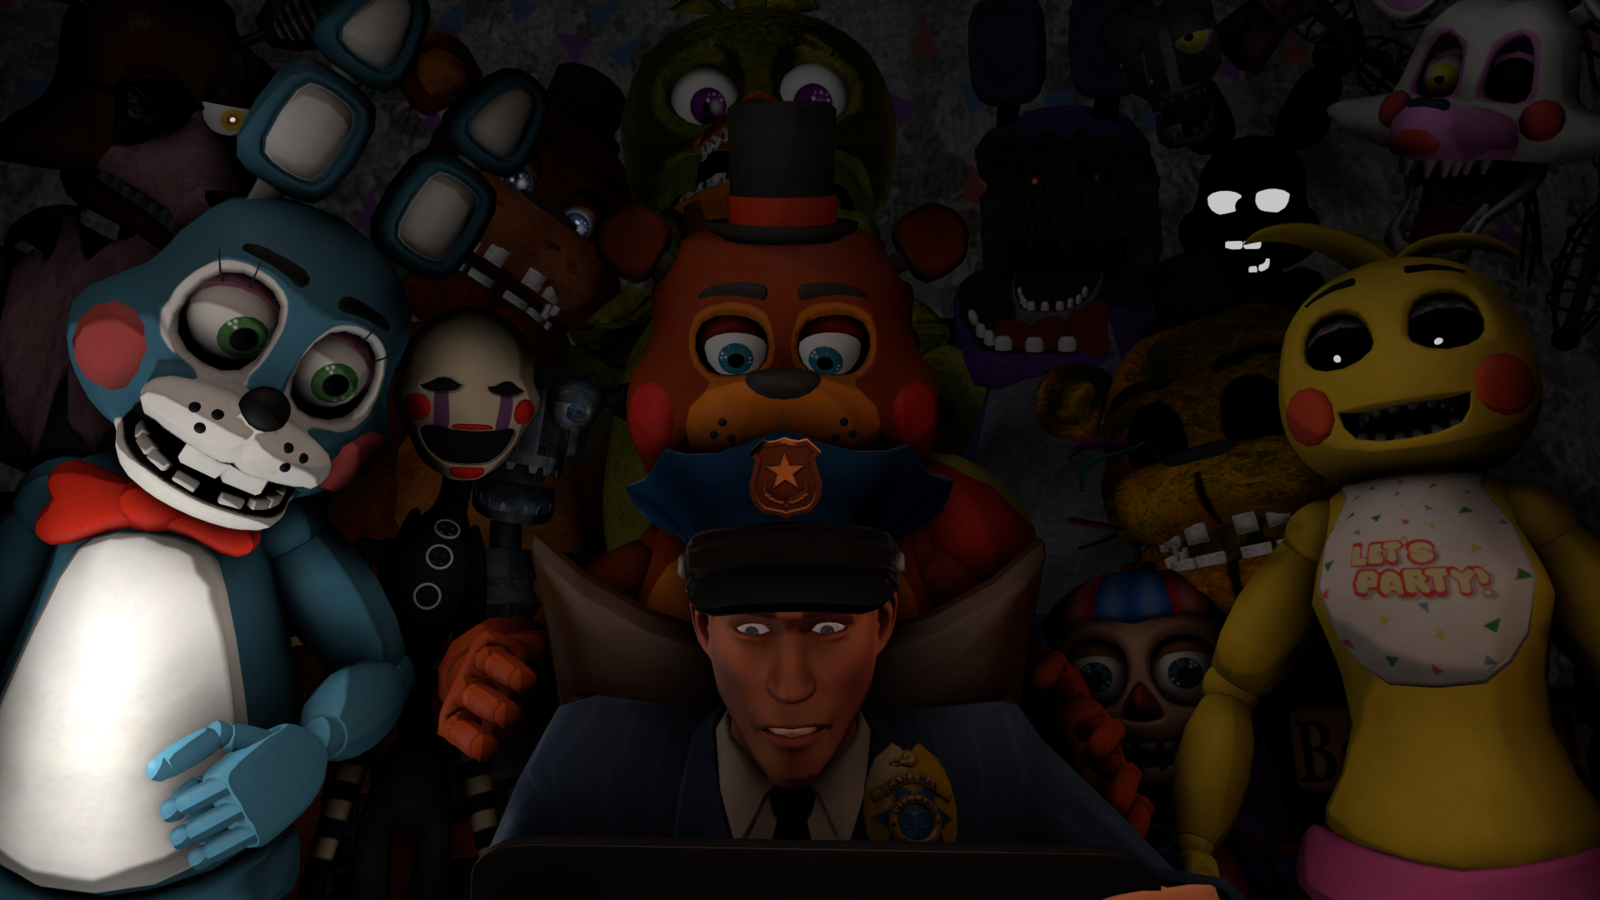 Free Download Five Nights At Freddys 2 By Kirby62626 1600x900